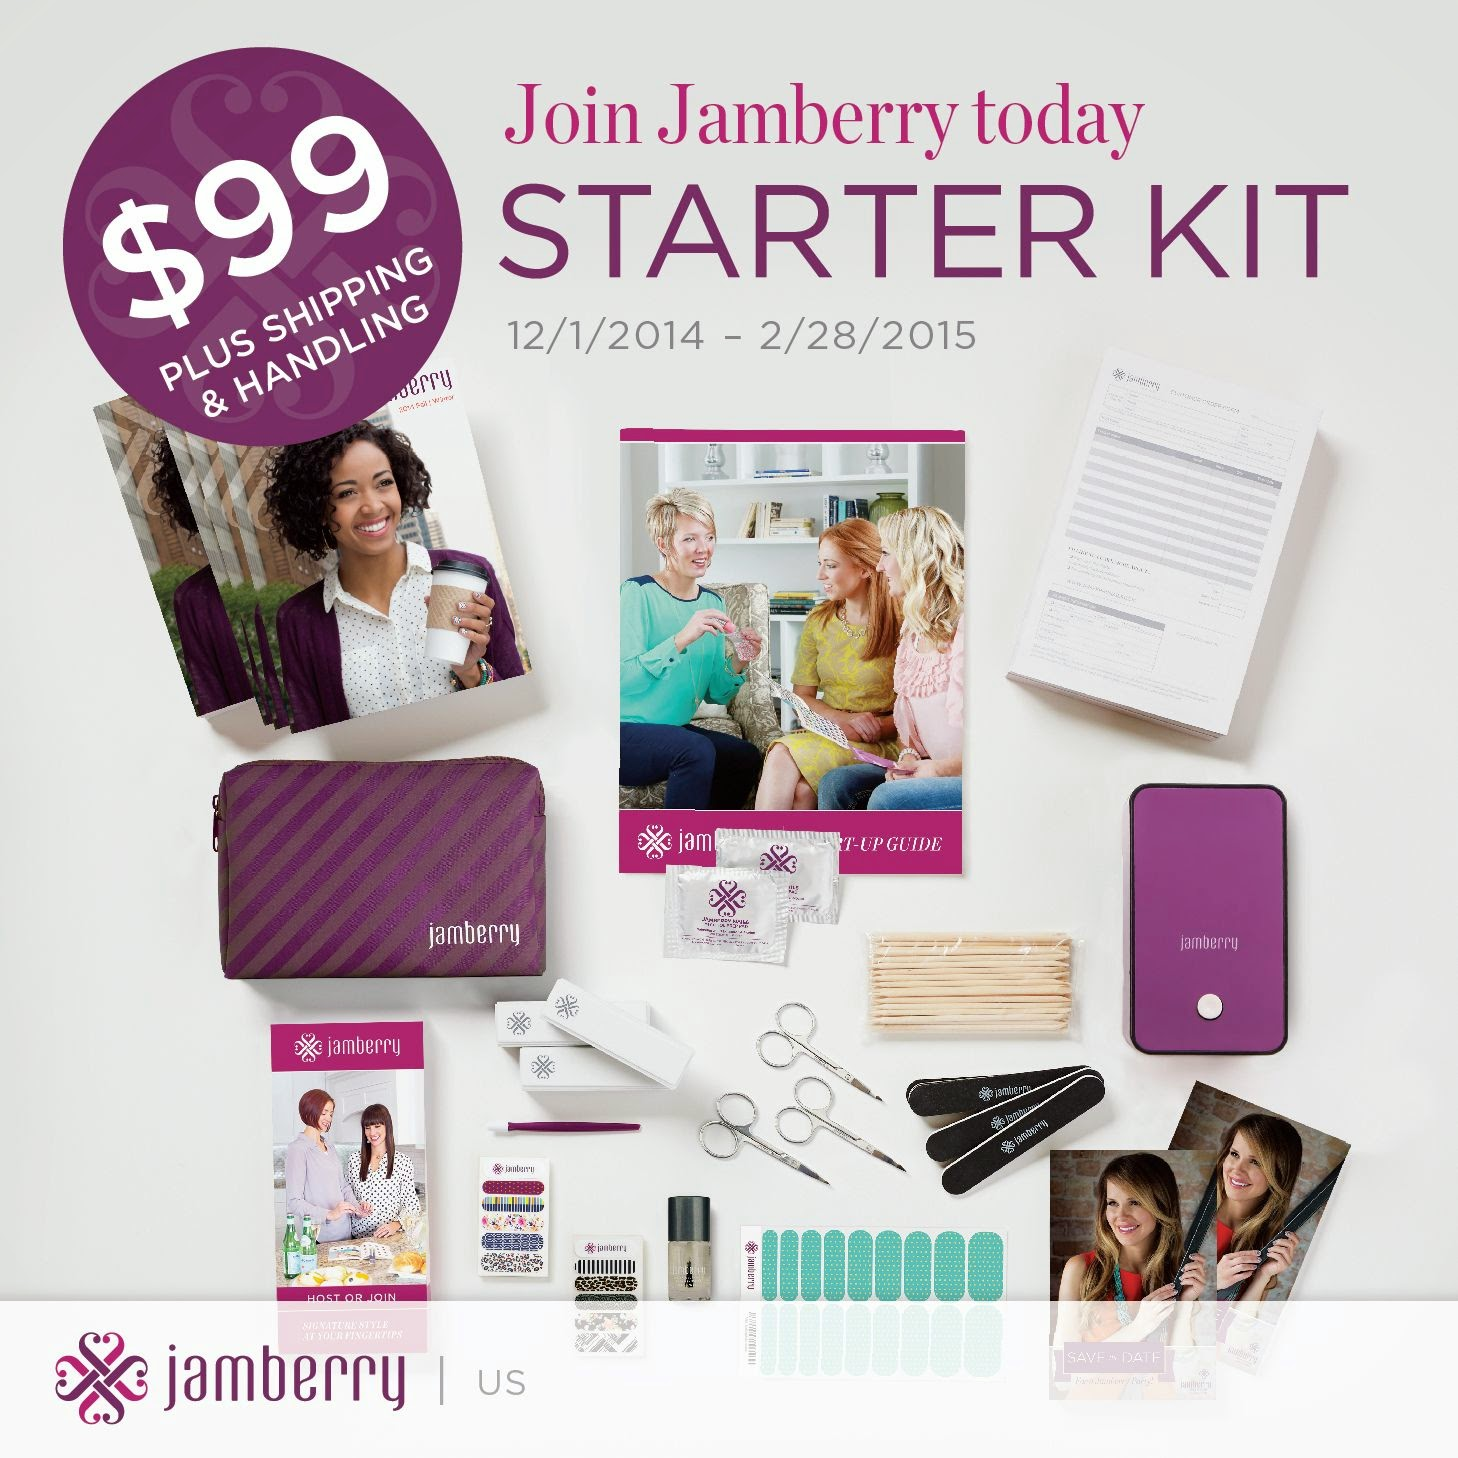 Adore My Jamberry Nails So You Think You Might Want To Be A Jamberry Consultant